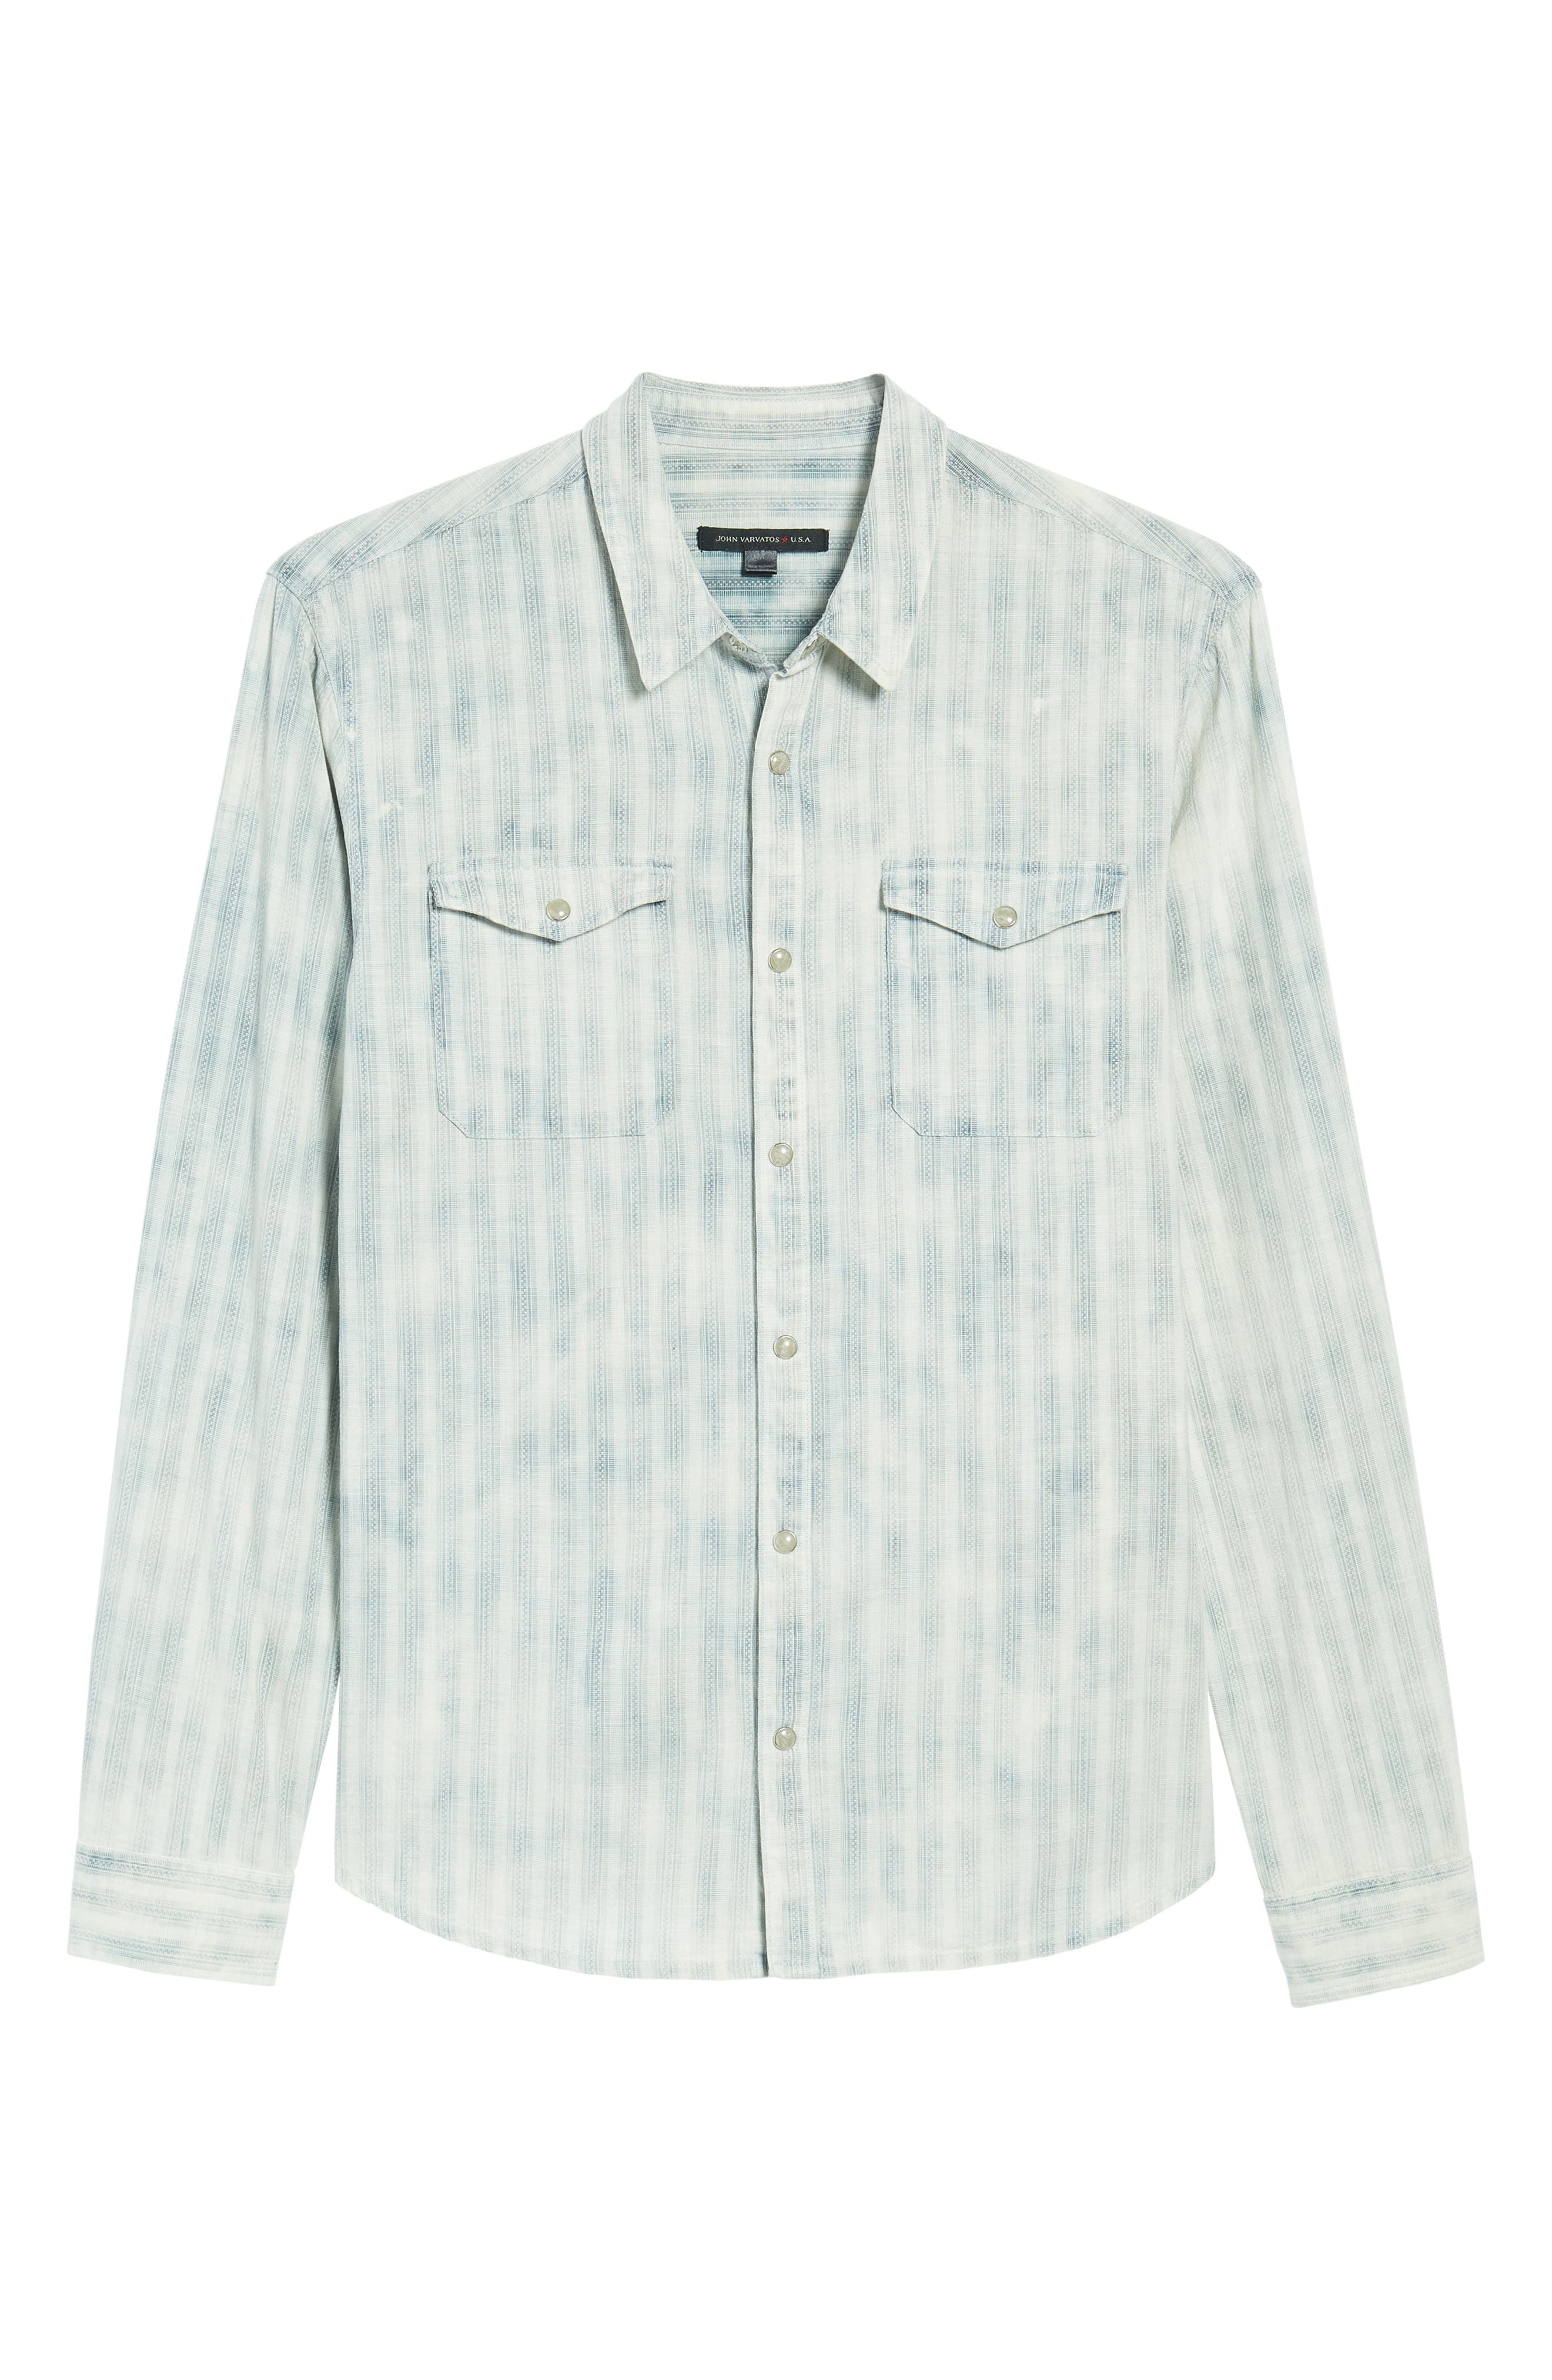 Extra Slim Fit Western Shirt,                             Alternate thumbnail 6, color,                             046